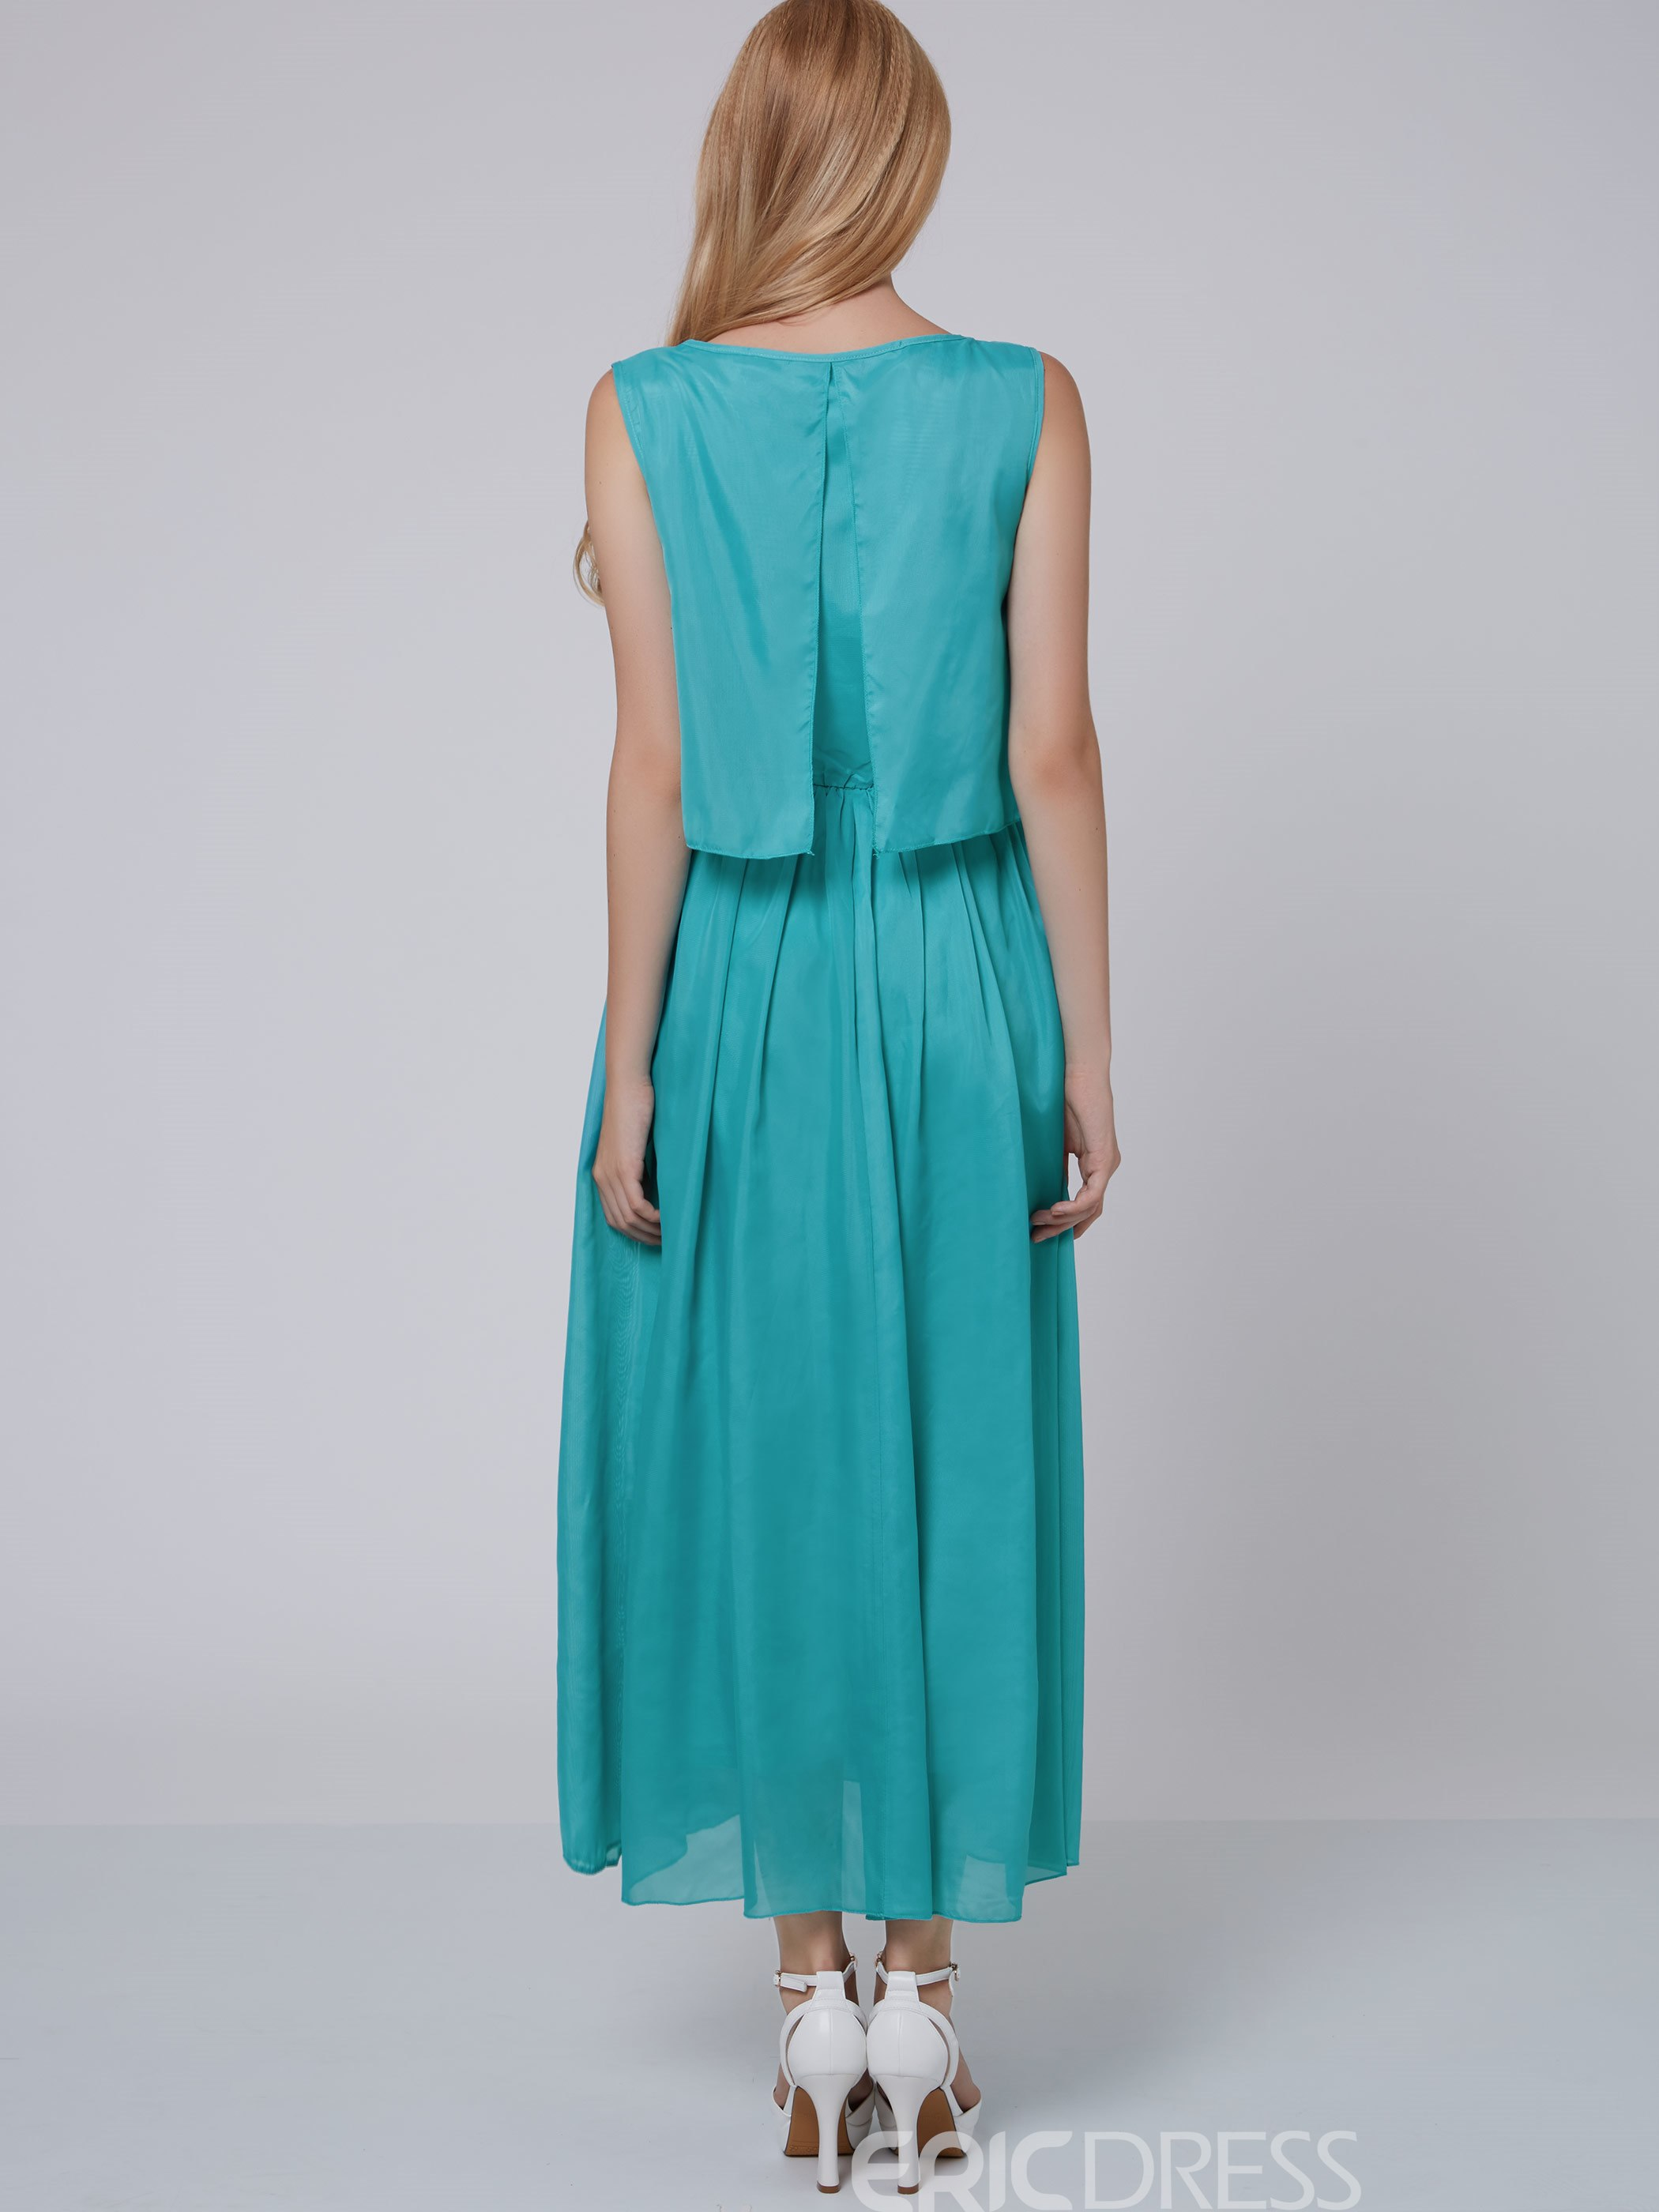 Ericdress Summer Pure Color Chiffon Maxi Dress